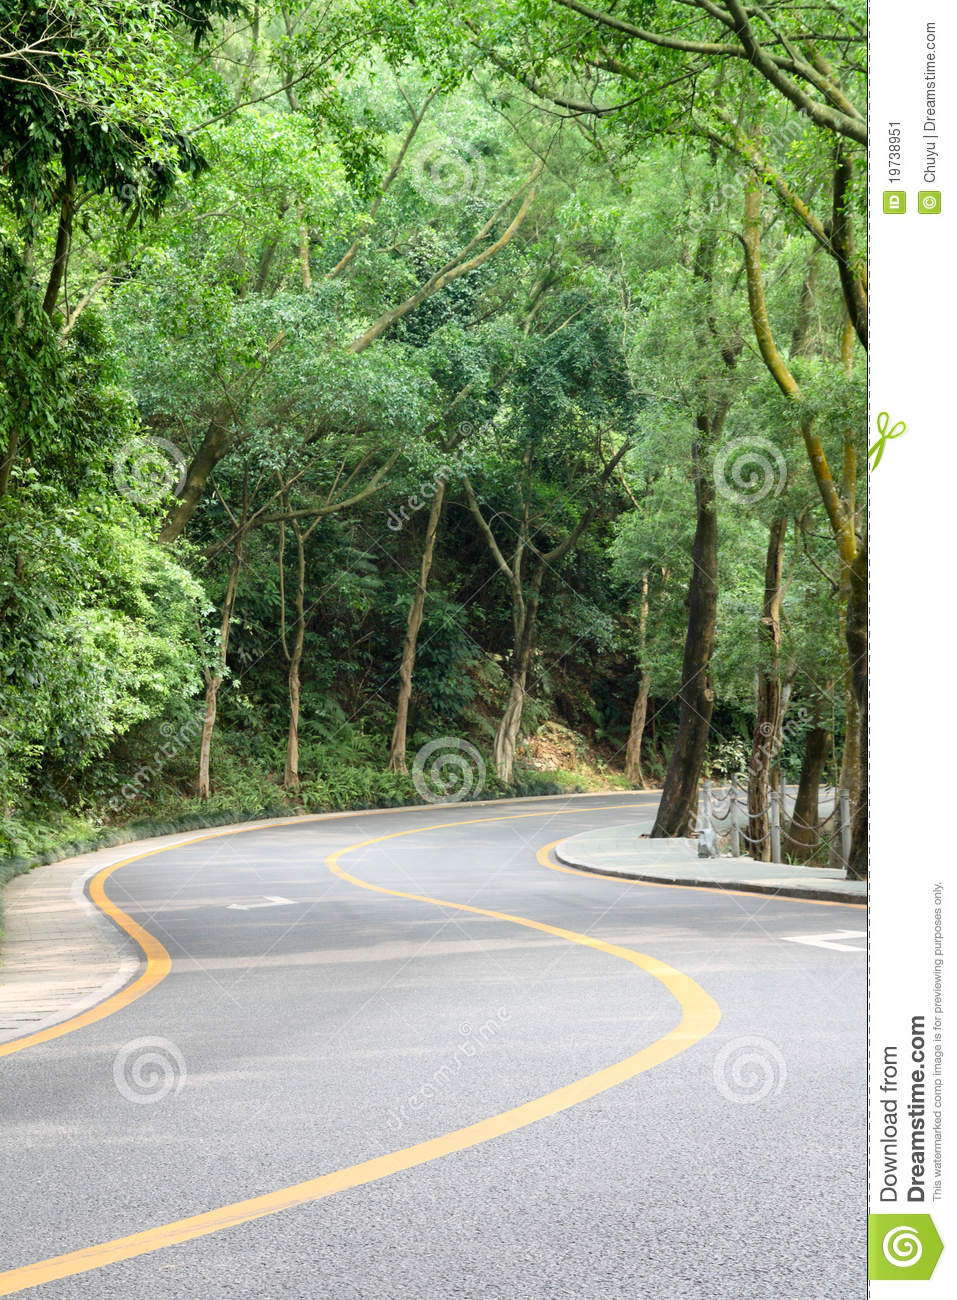 curved road with trees on both sides stock photo colourbox curved road with trees stock image image 19738951